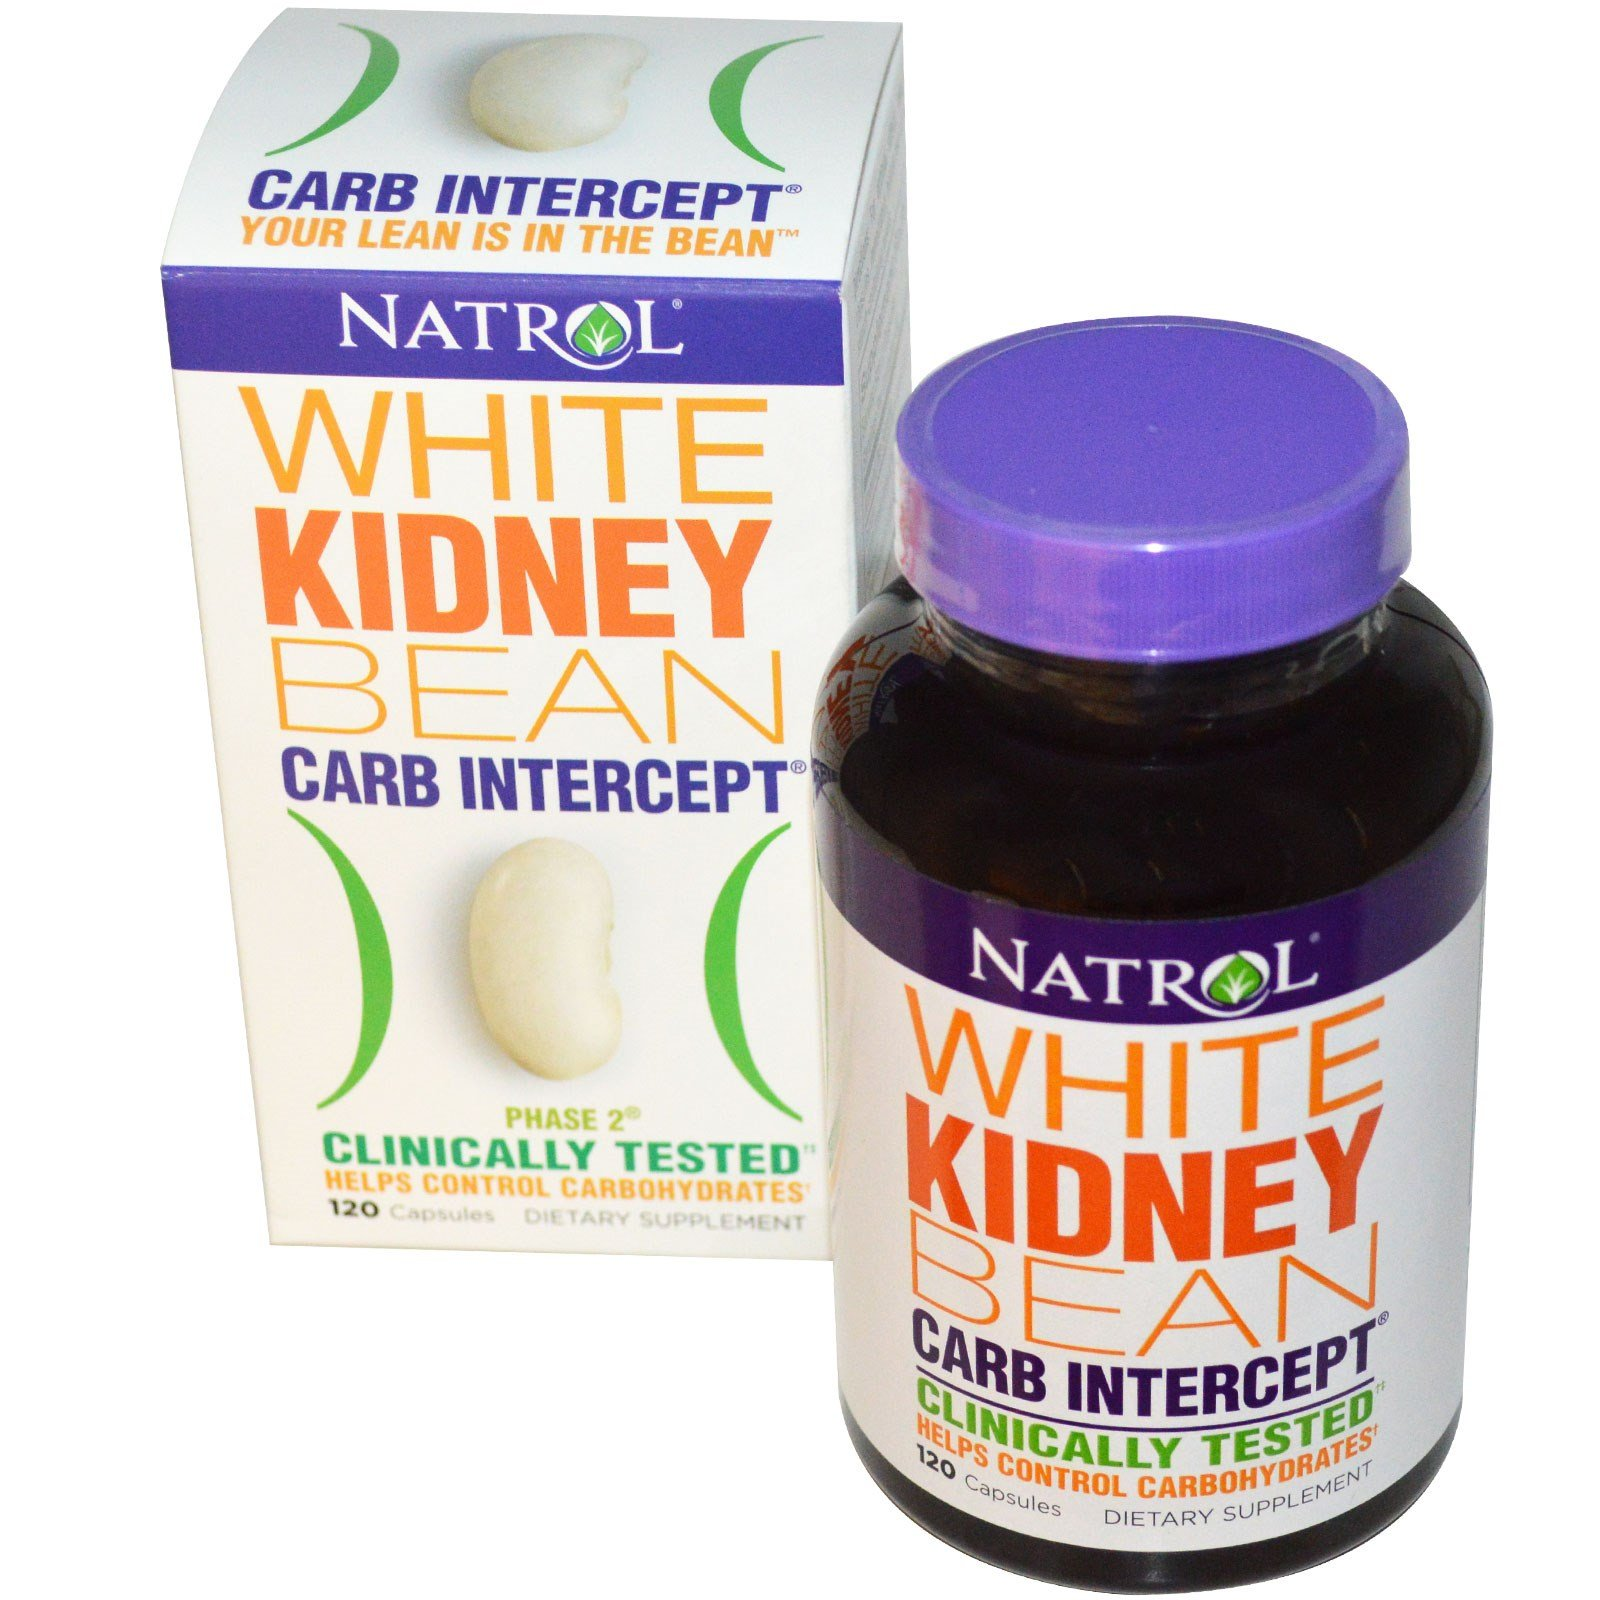 Natrol, Carb Intercept, Phase 2 White Kidney Bean, 120 Capsules - 2pc by  (Image #1)